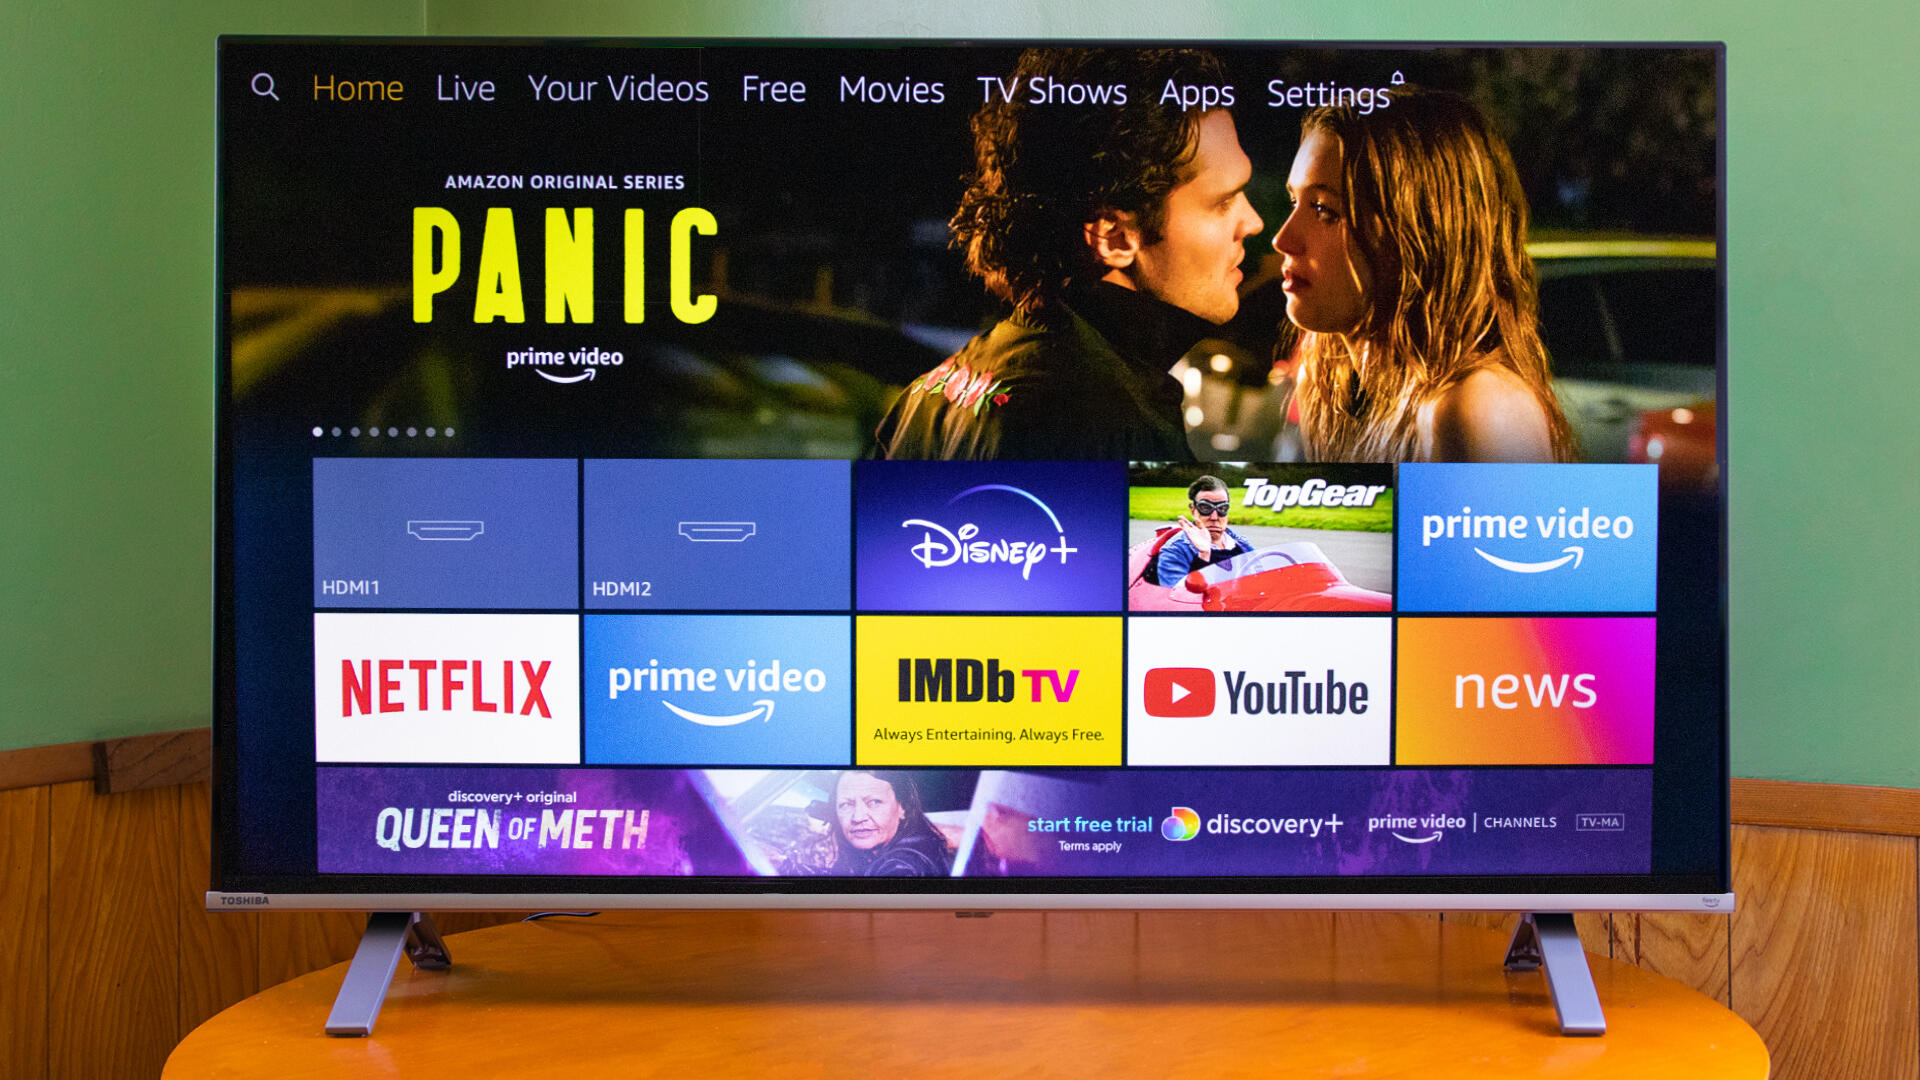 Toshiba Amazon Fire TV C350 series review: Alexa, what's on?     - CNET